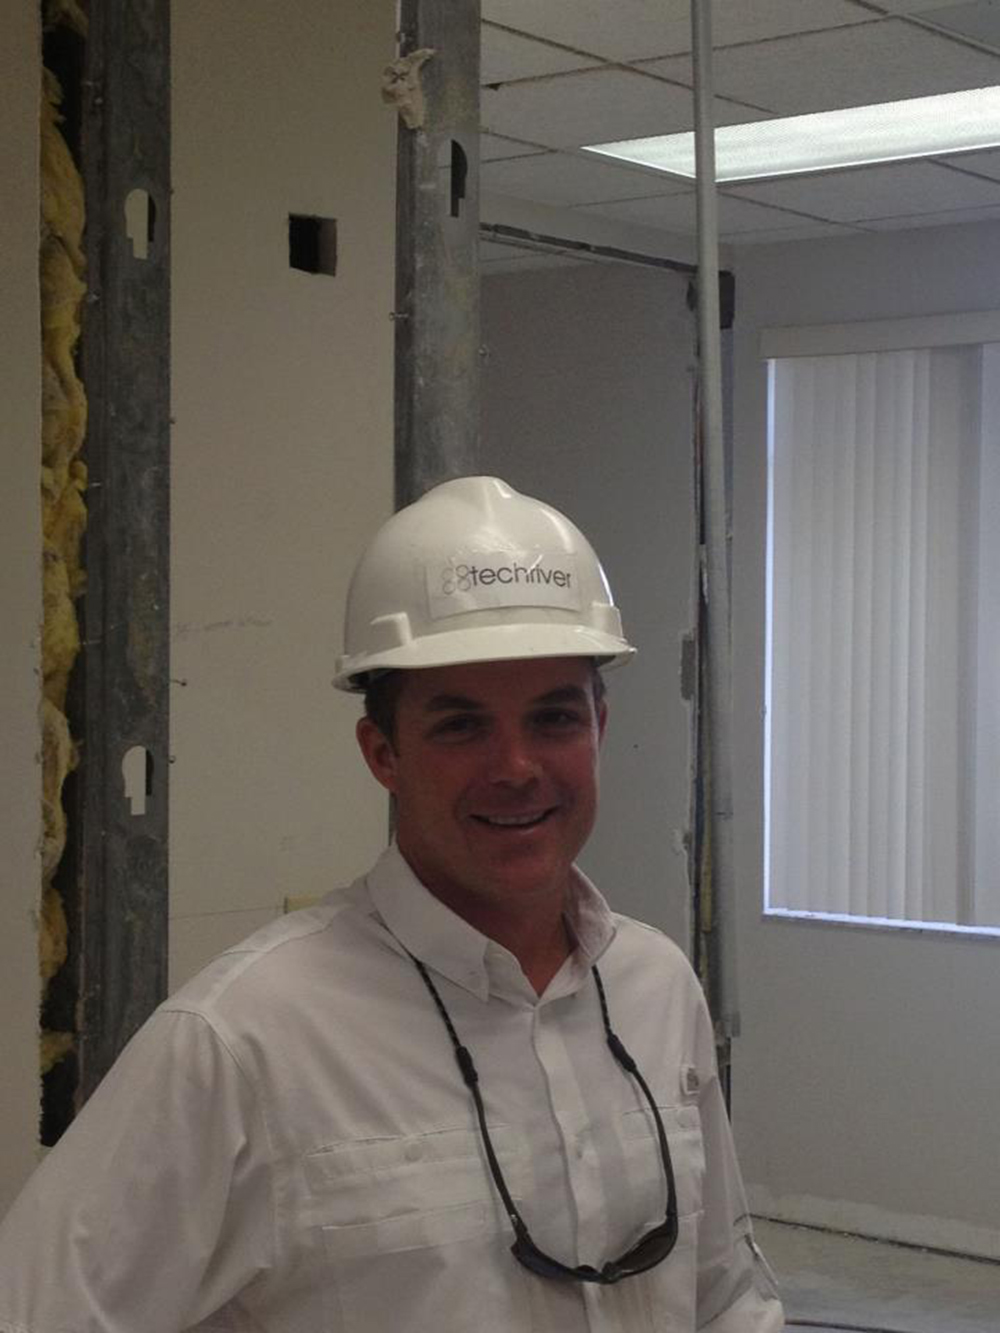 TechRiver employee in a hardhat